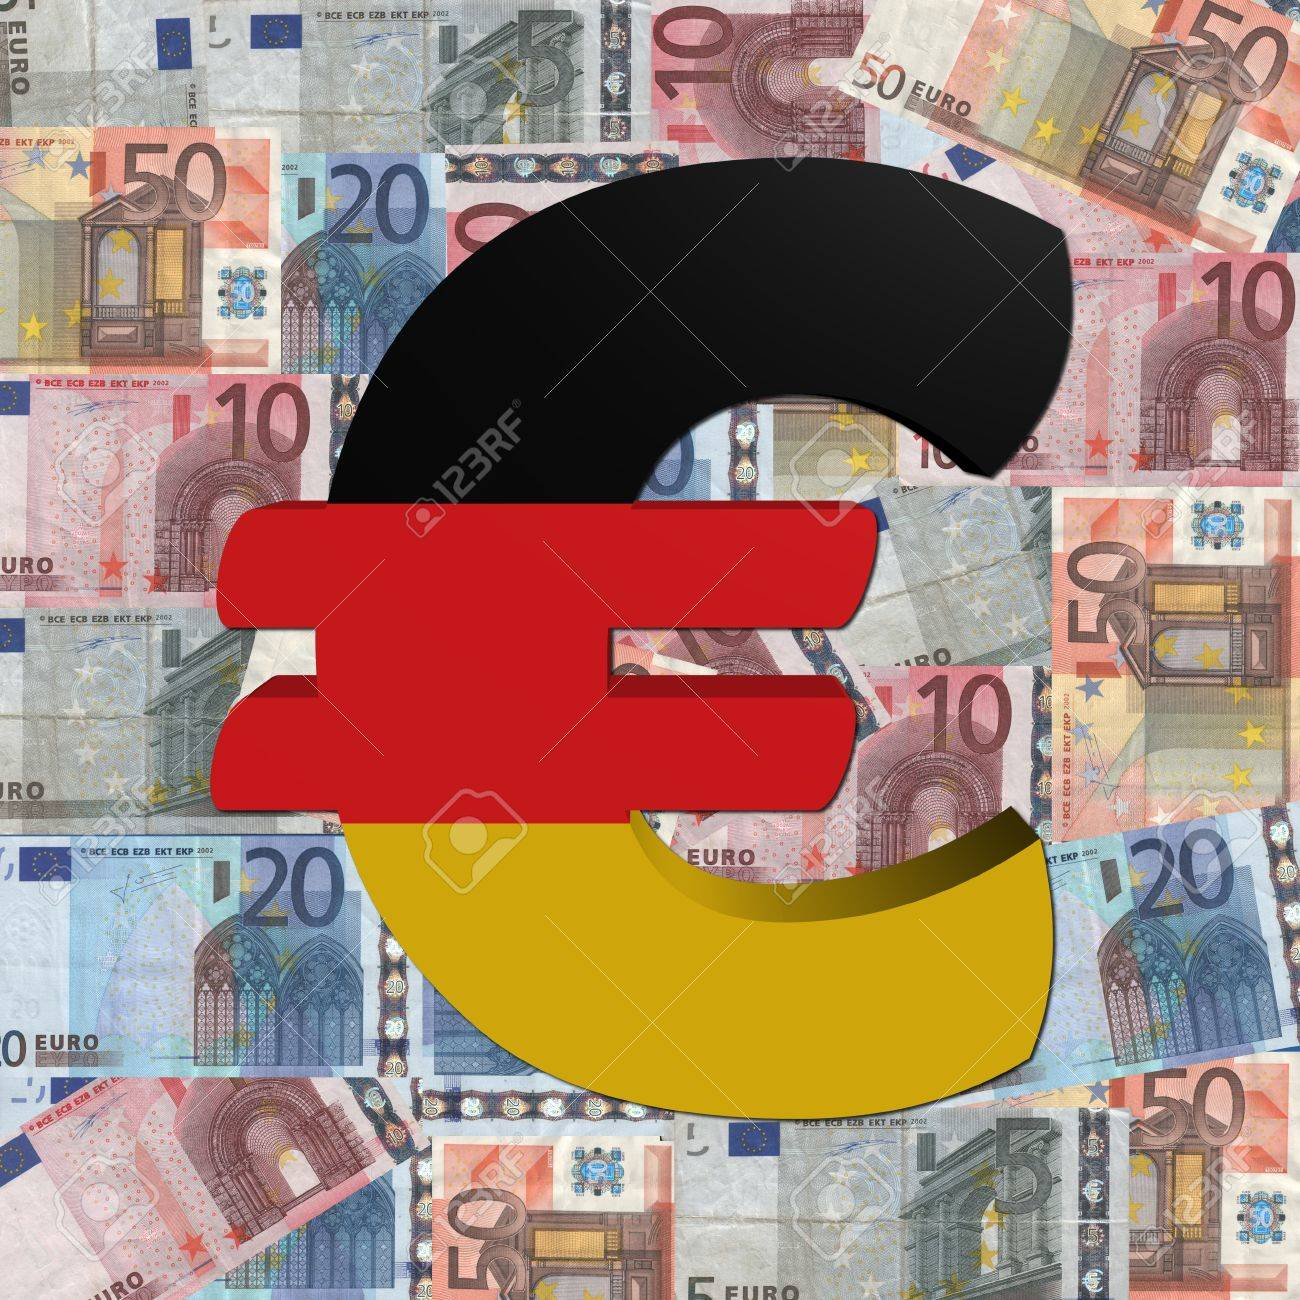 Euro Symbol With German Flag On Euro Currency Illustration Stock